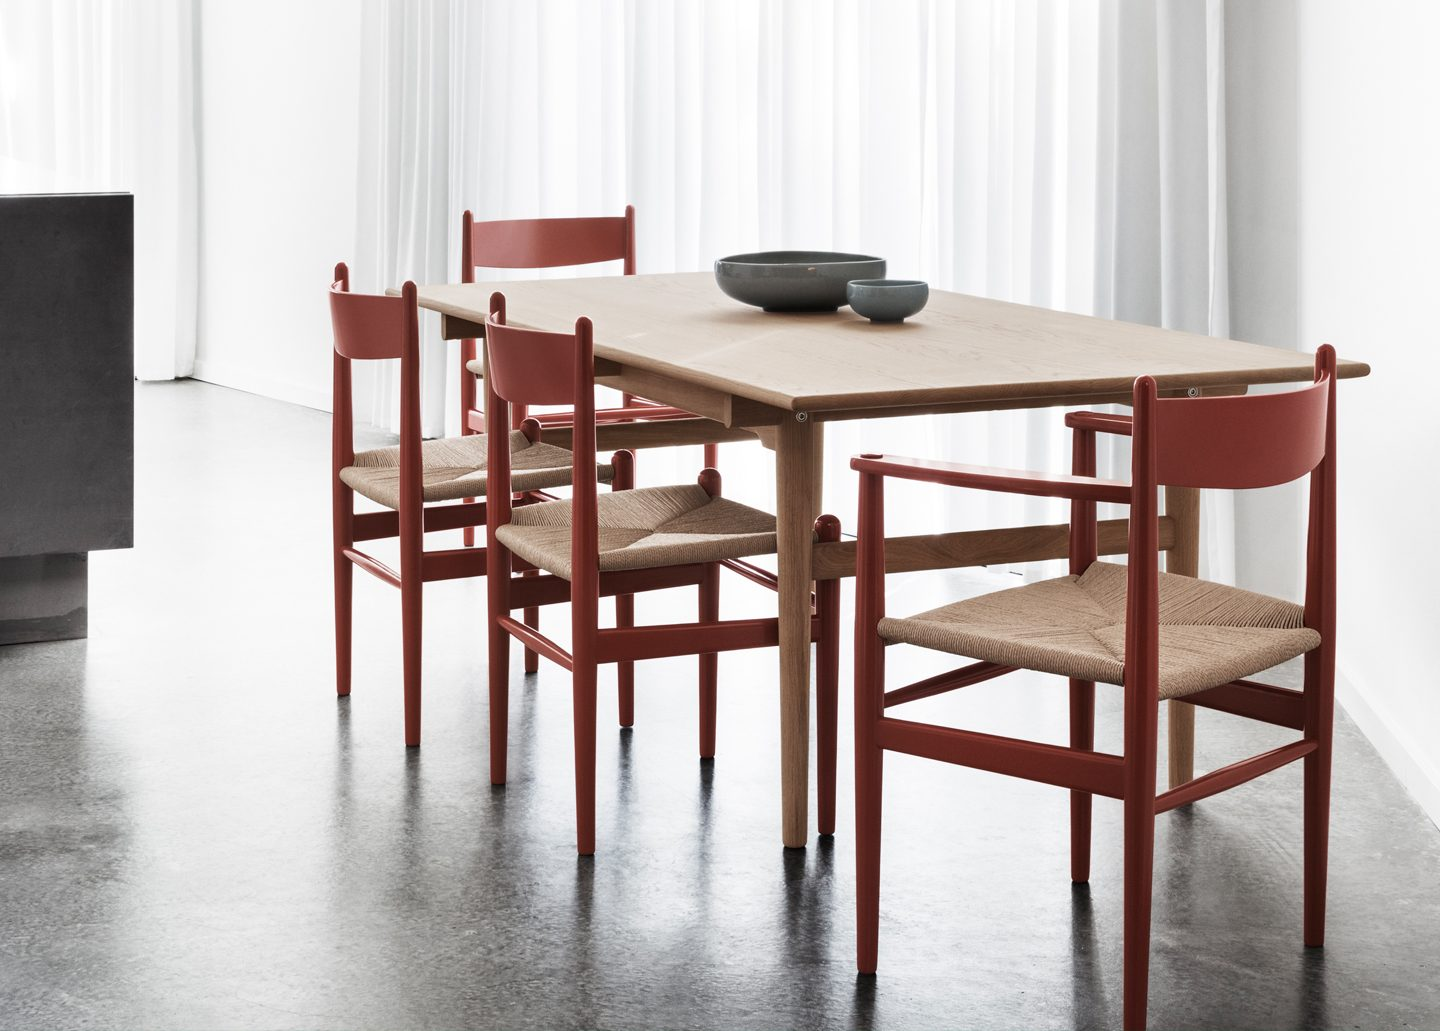 CH327 DINING TABLE EX-DISPLAY BY CARL HANSEN